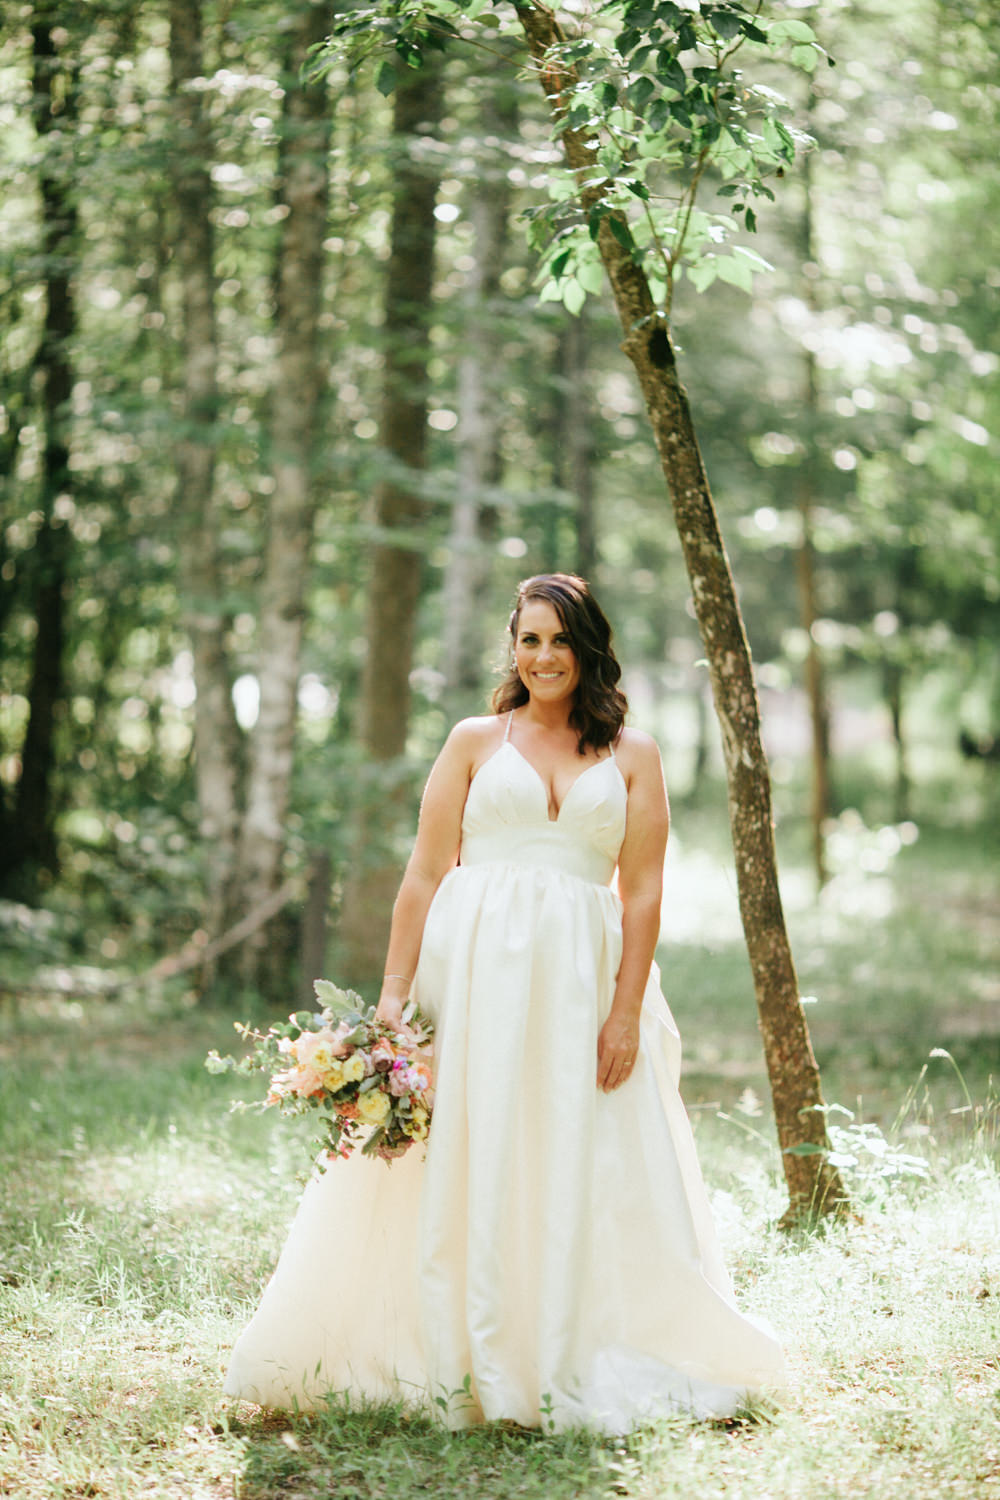 sugarboofarmwedding-2022.jpg